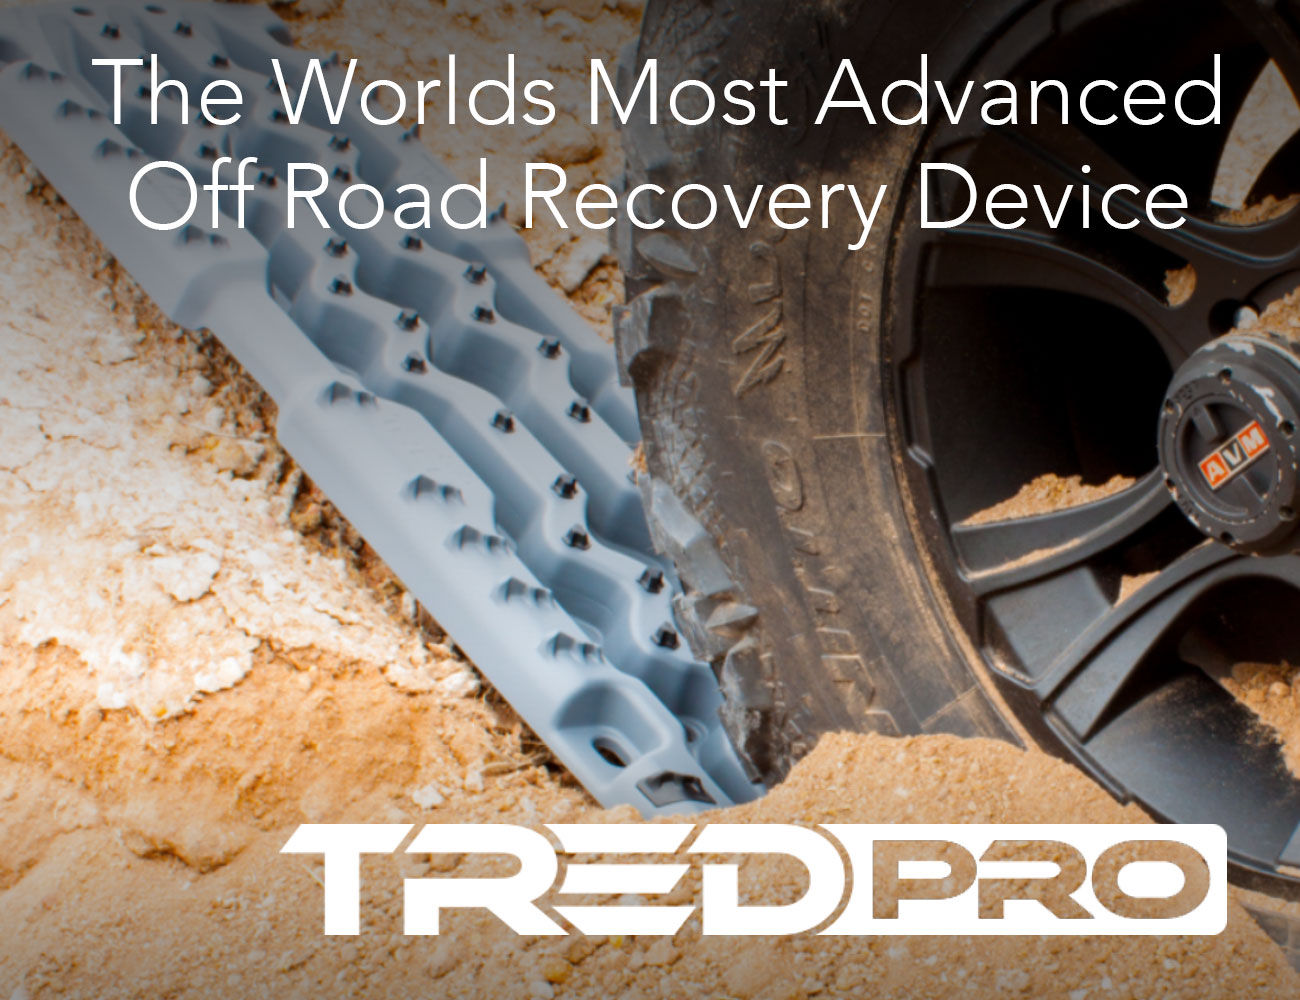 TRED Pro – The World's Most Advanced All-In-One Off-Road Vehicle Recovery Device